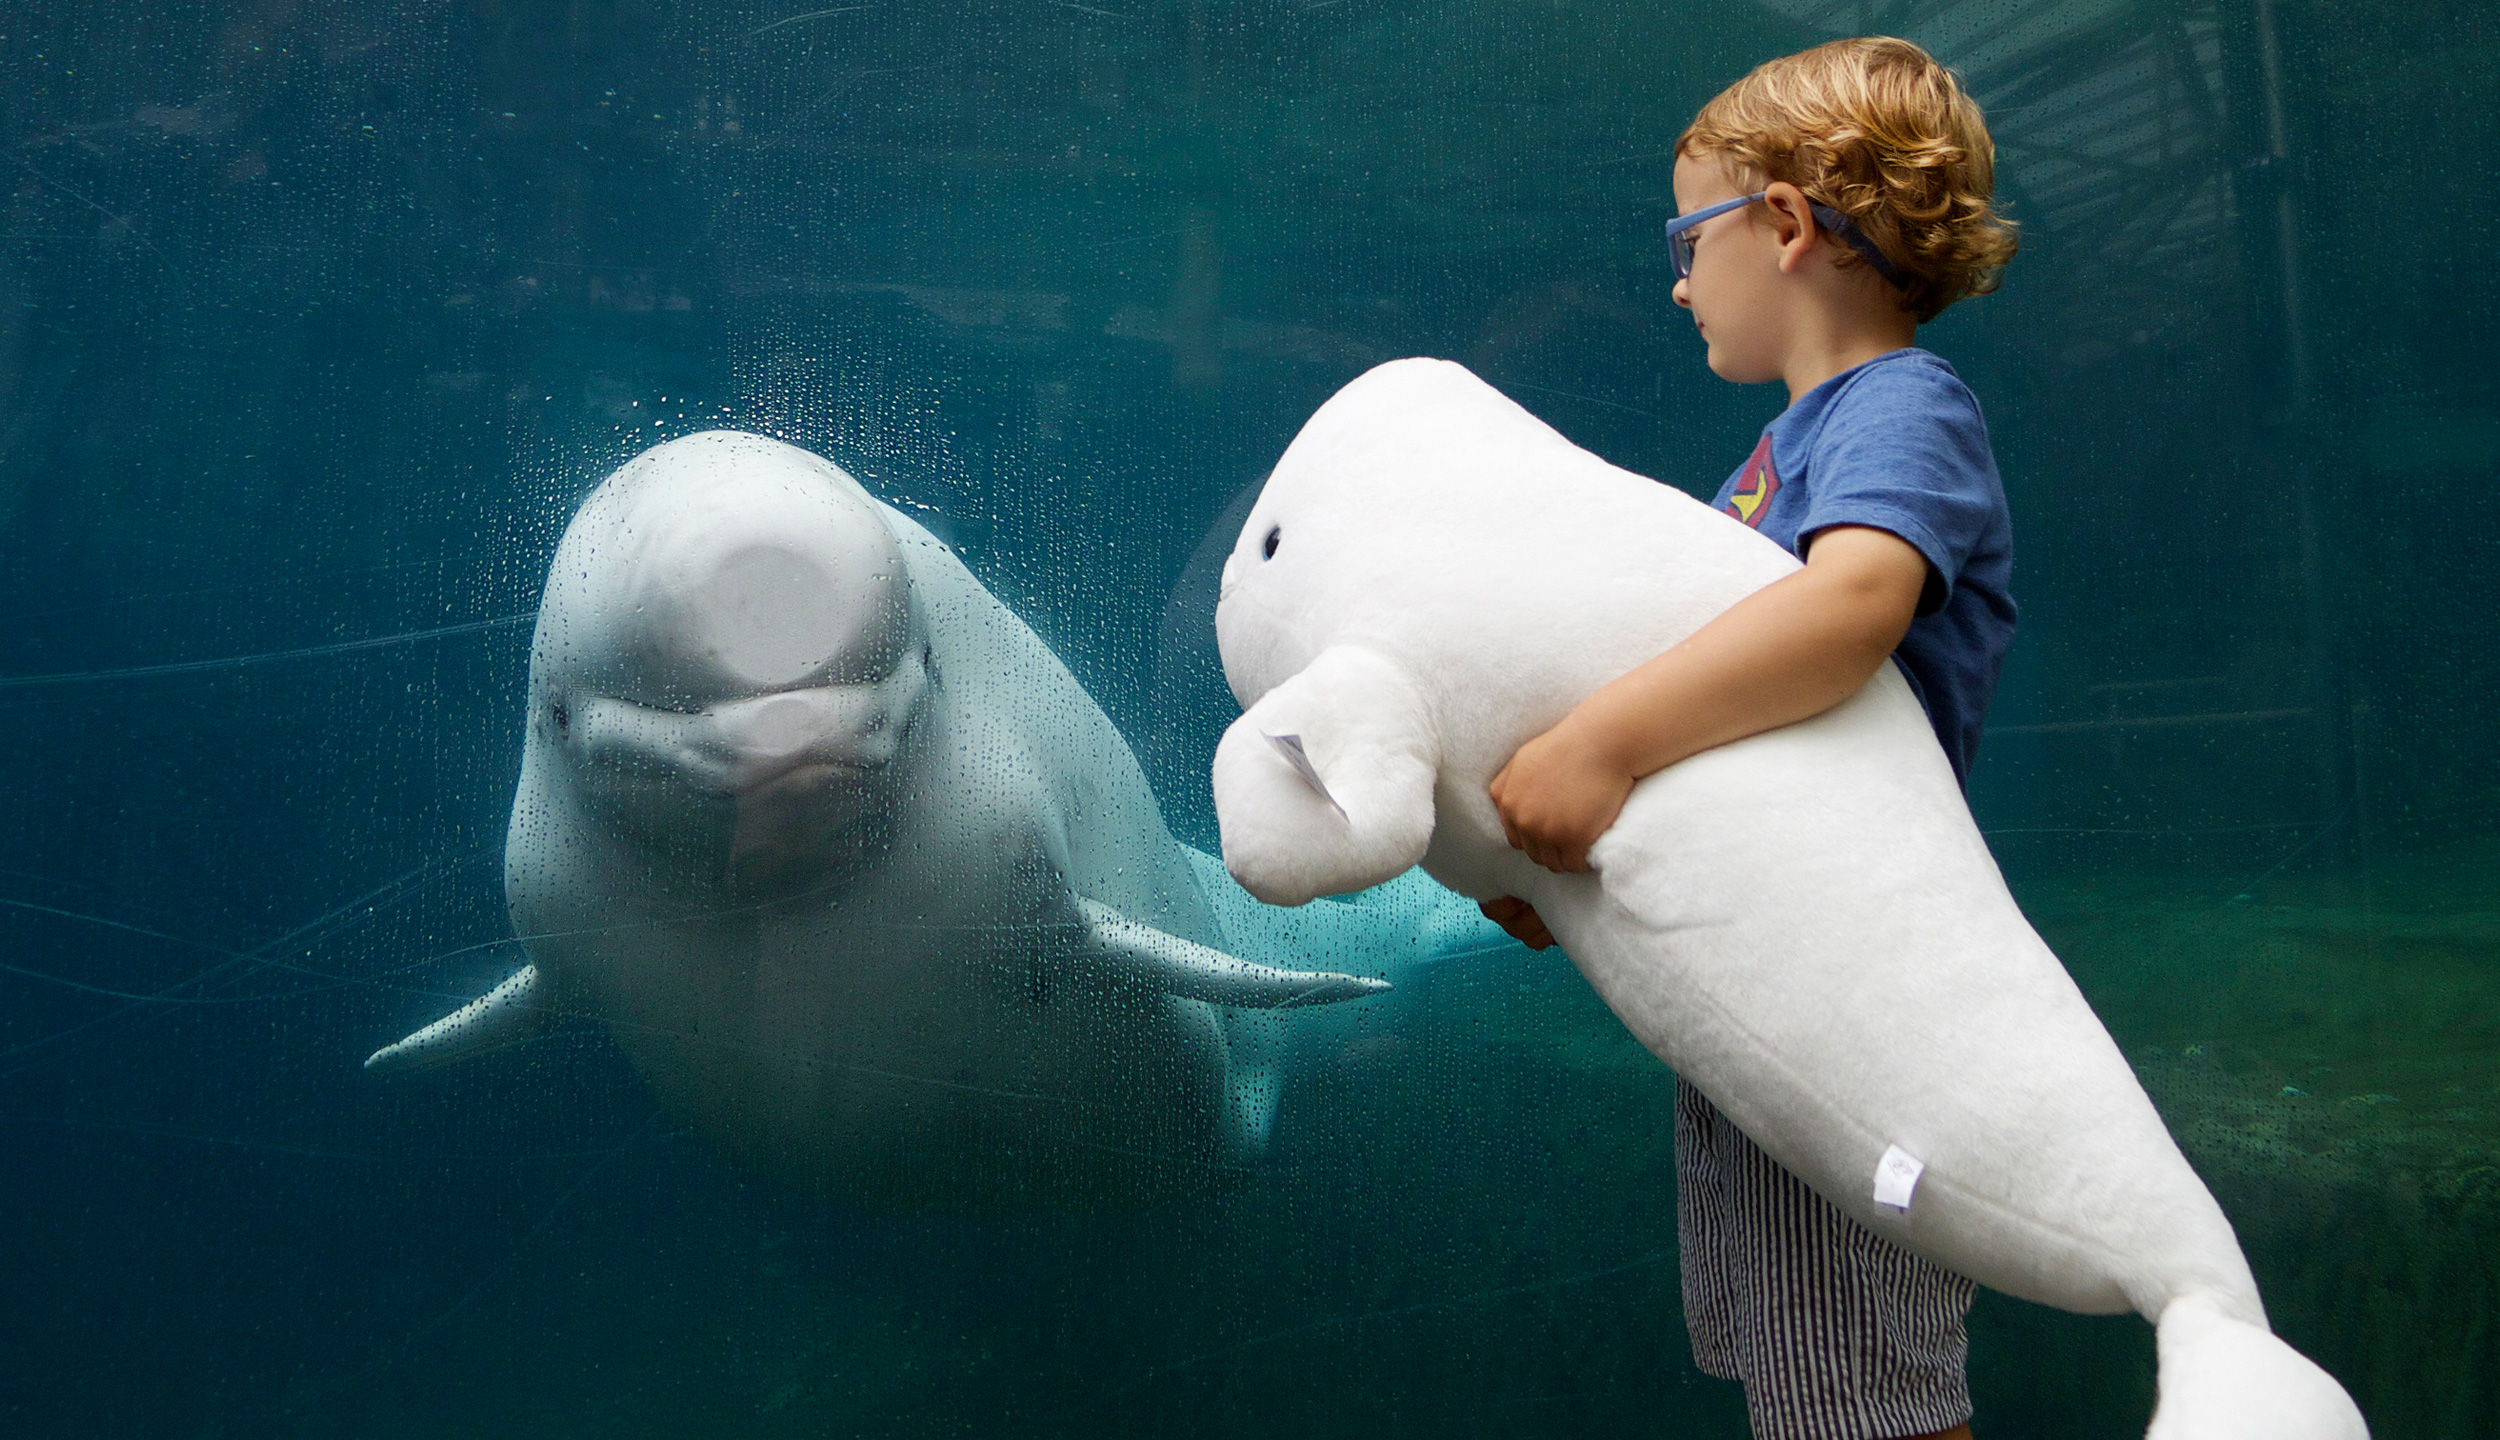 KIM LOWE | DIRECTOR PHOTOGRAPHER | KIDS  | MYSTIC AQUARIUM | BELUGA WHALE | EXPLORE | Discover | 49